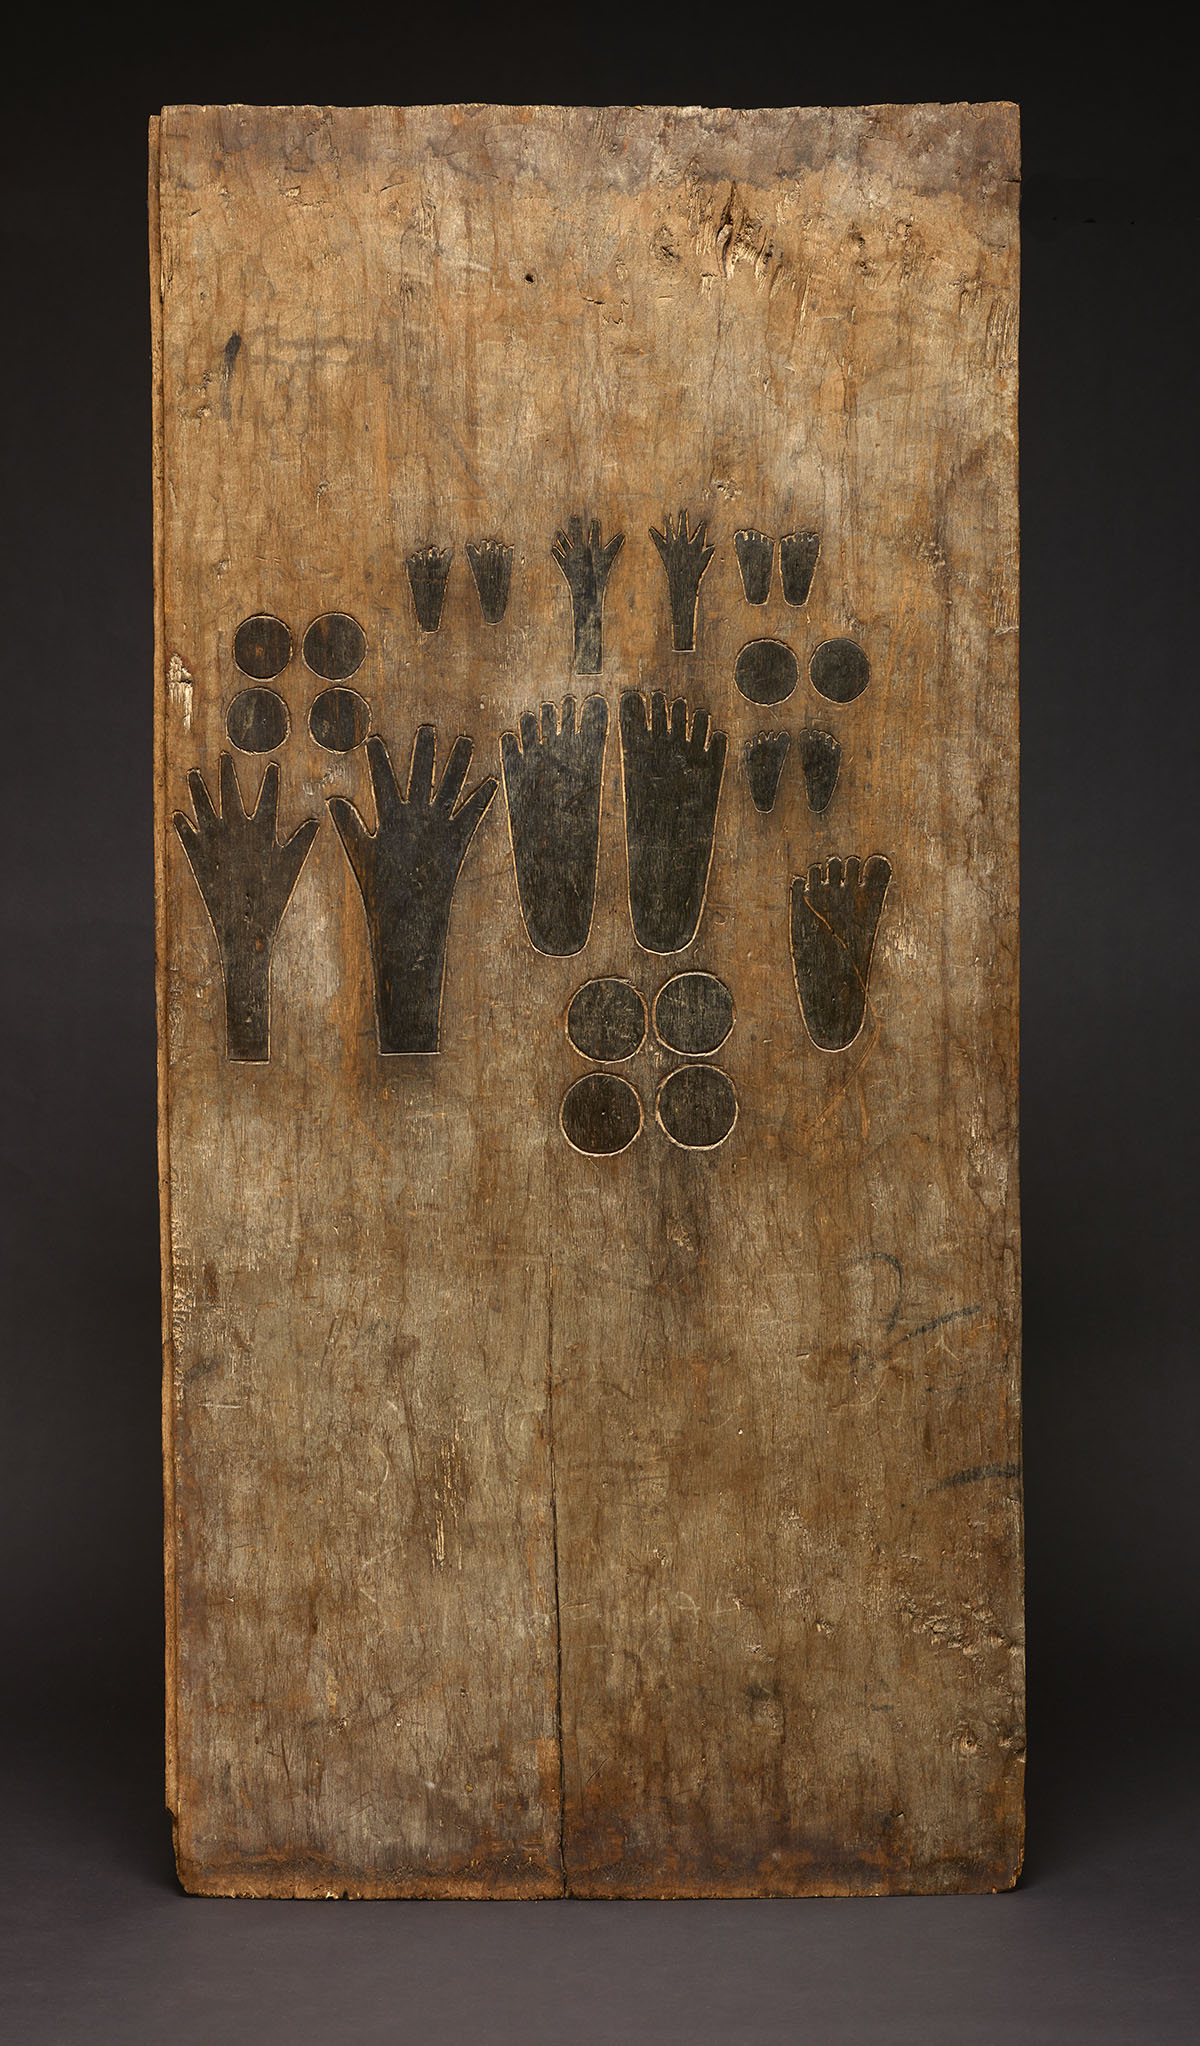 Memorial Board Representing Deceased Family Members |  Kirekat  © The Dallas Museum of Art | Texas, USA